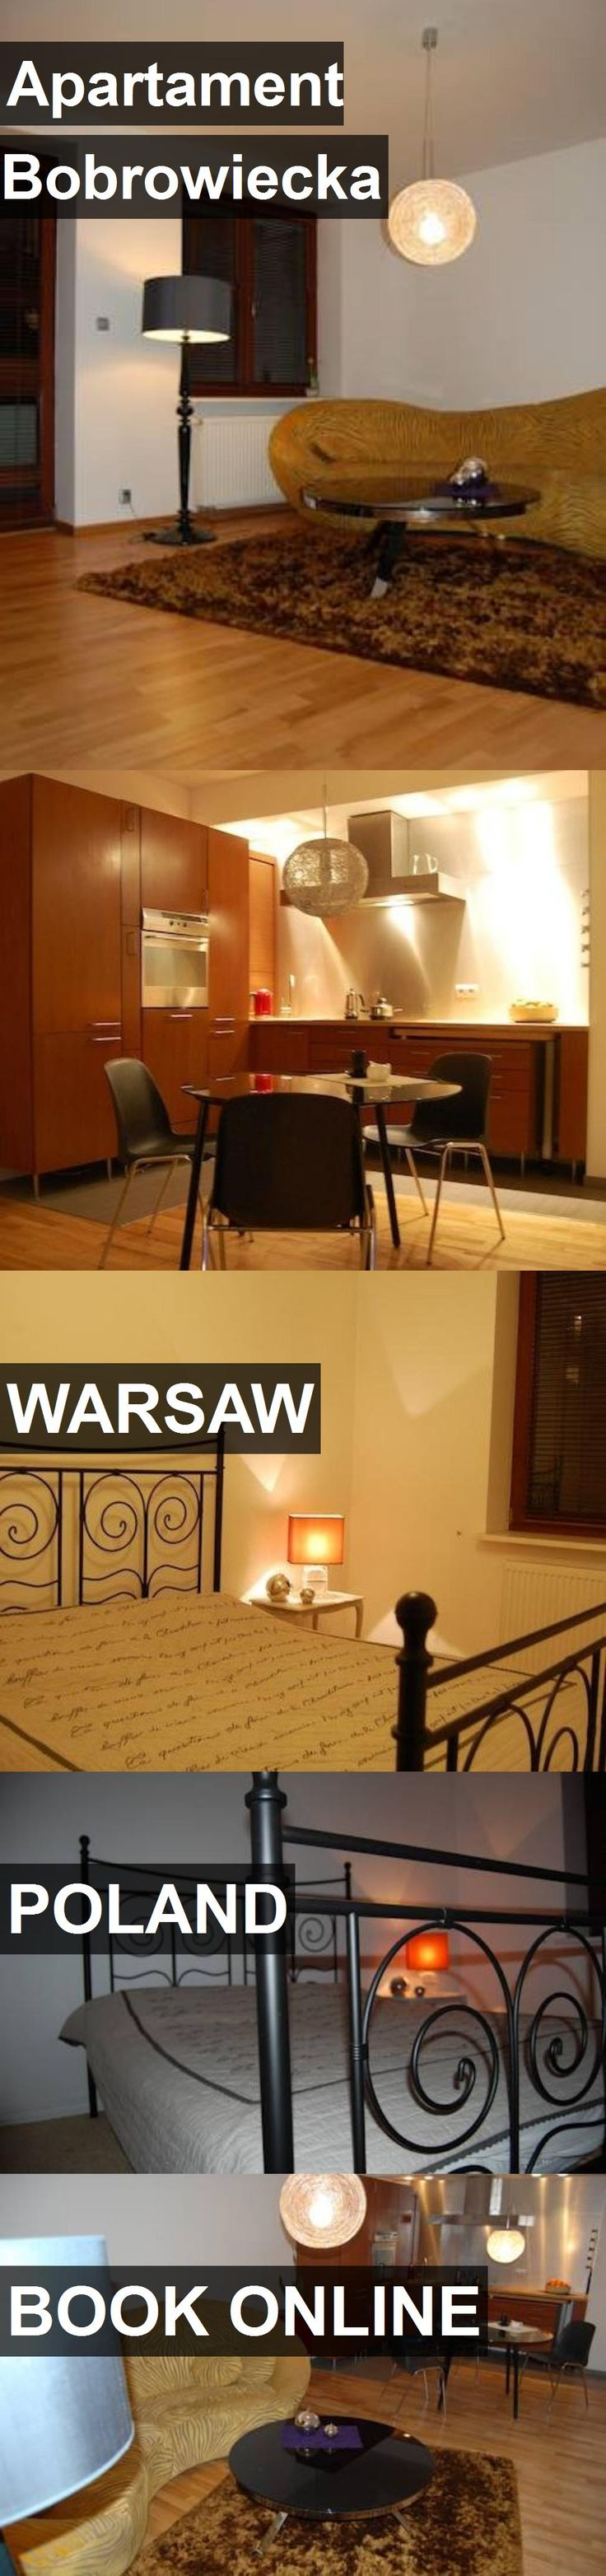 Hotel Apartament Bobrowiecka in Warsaw, Poland. For more information, photos, reviews and best prices please follow the link. #Poland #Warsaw #ApartamentBobrowiecka #hotel #travel #vacation